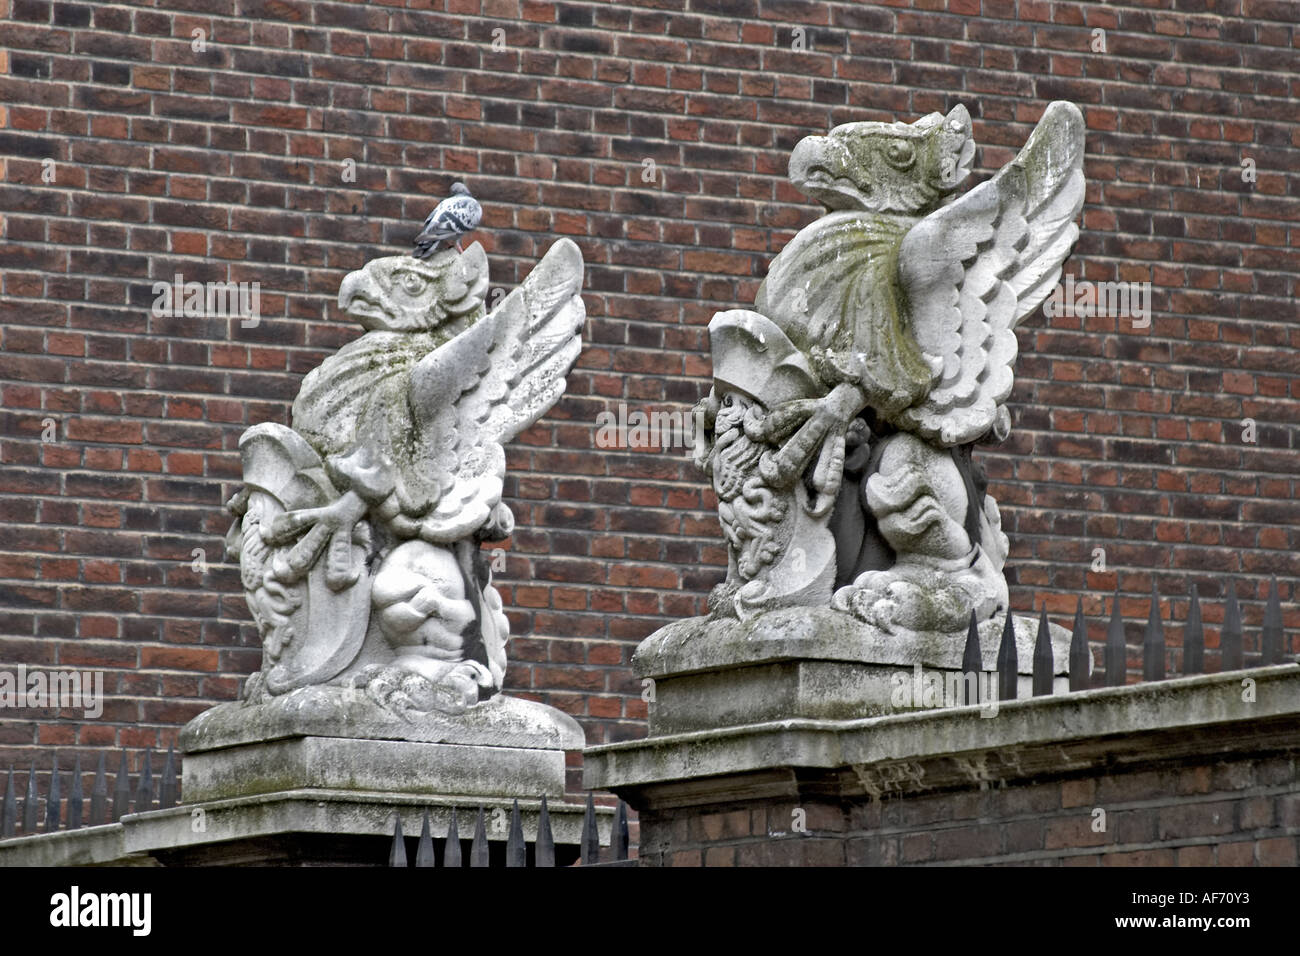 Griffin gatepost figures in Grey s Inn Inns of Court with barrister s chambers London WC1 England Law and legal workplace - Stock Image